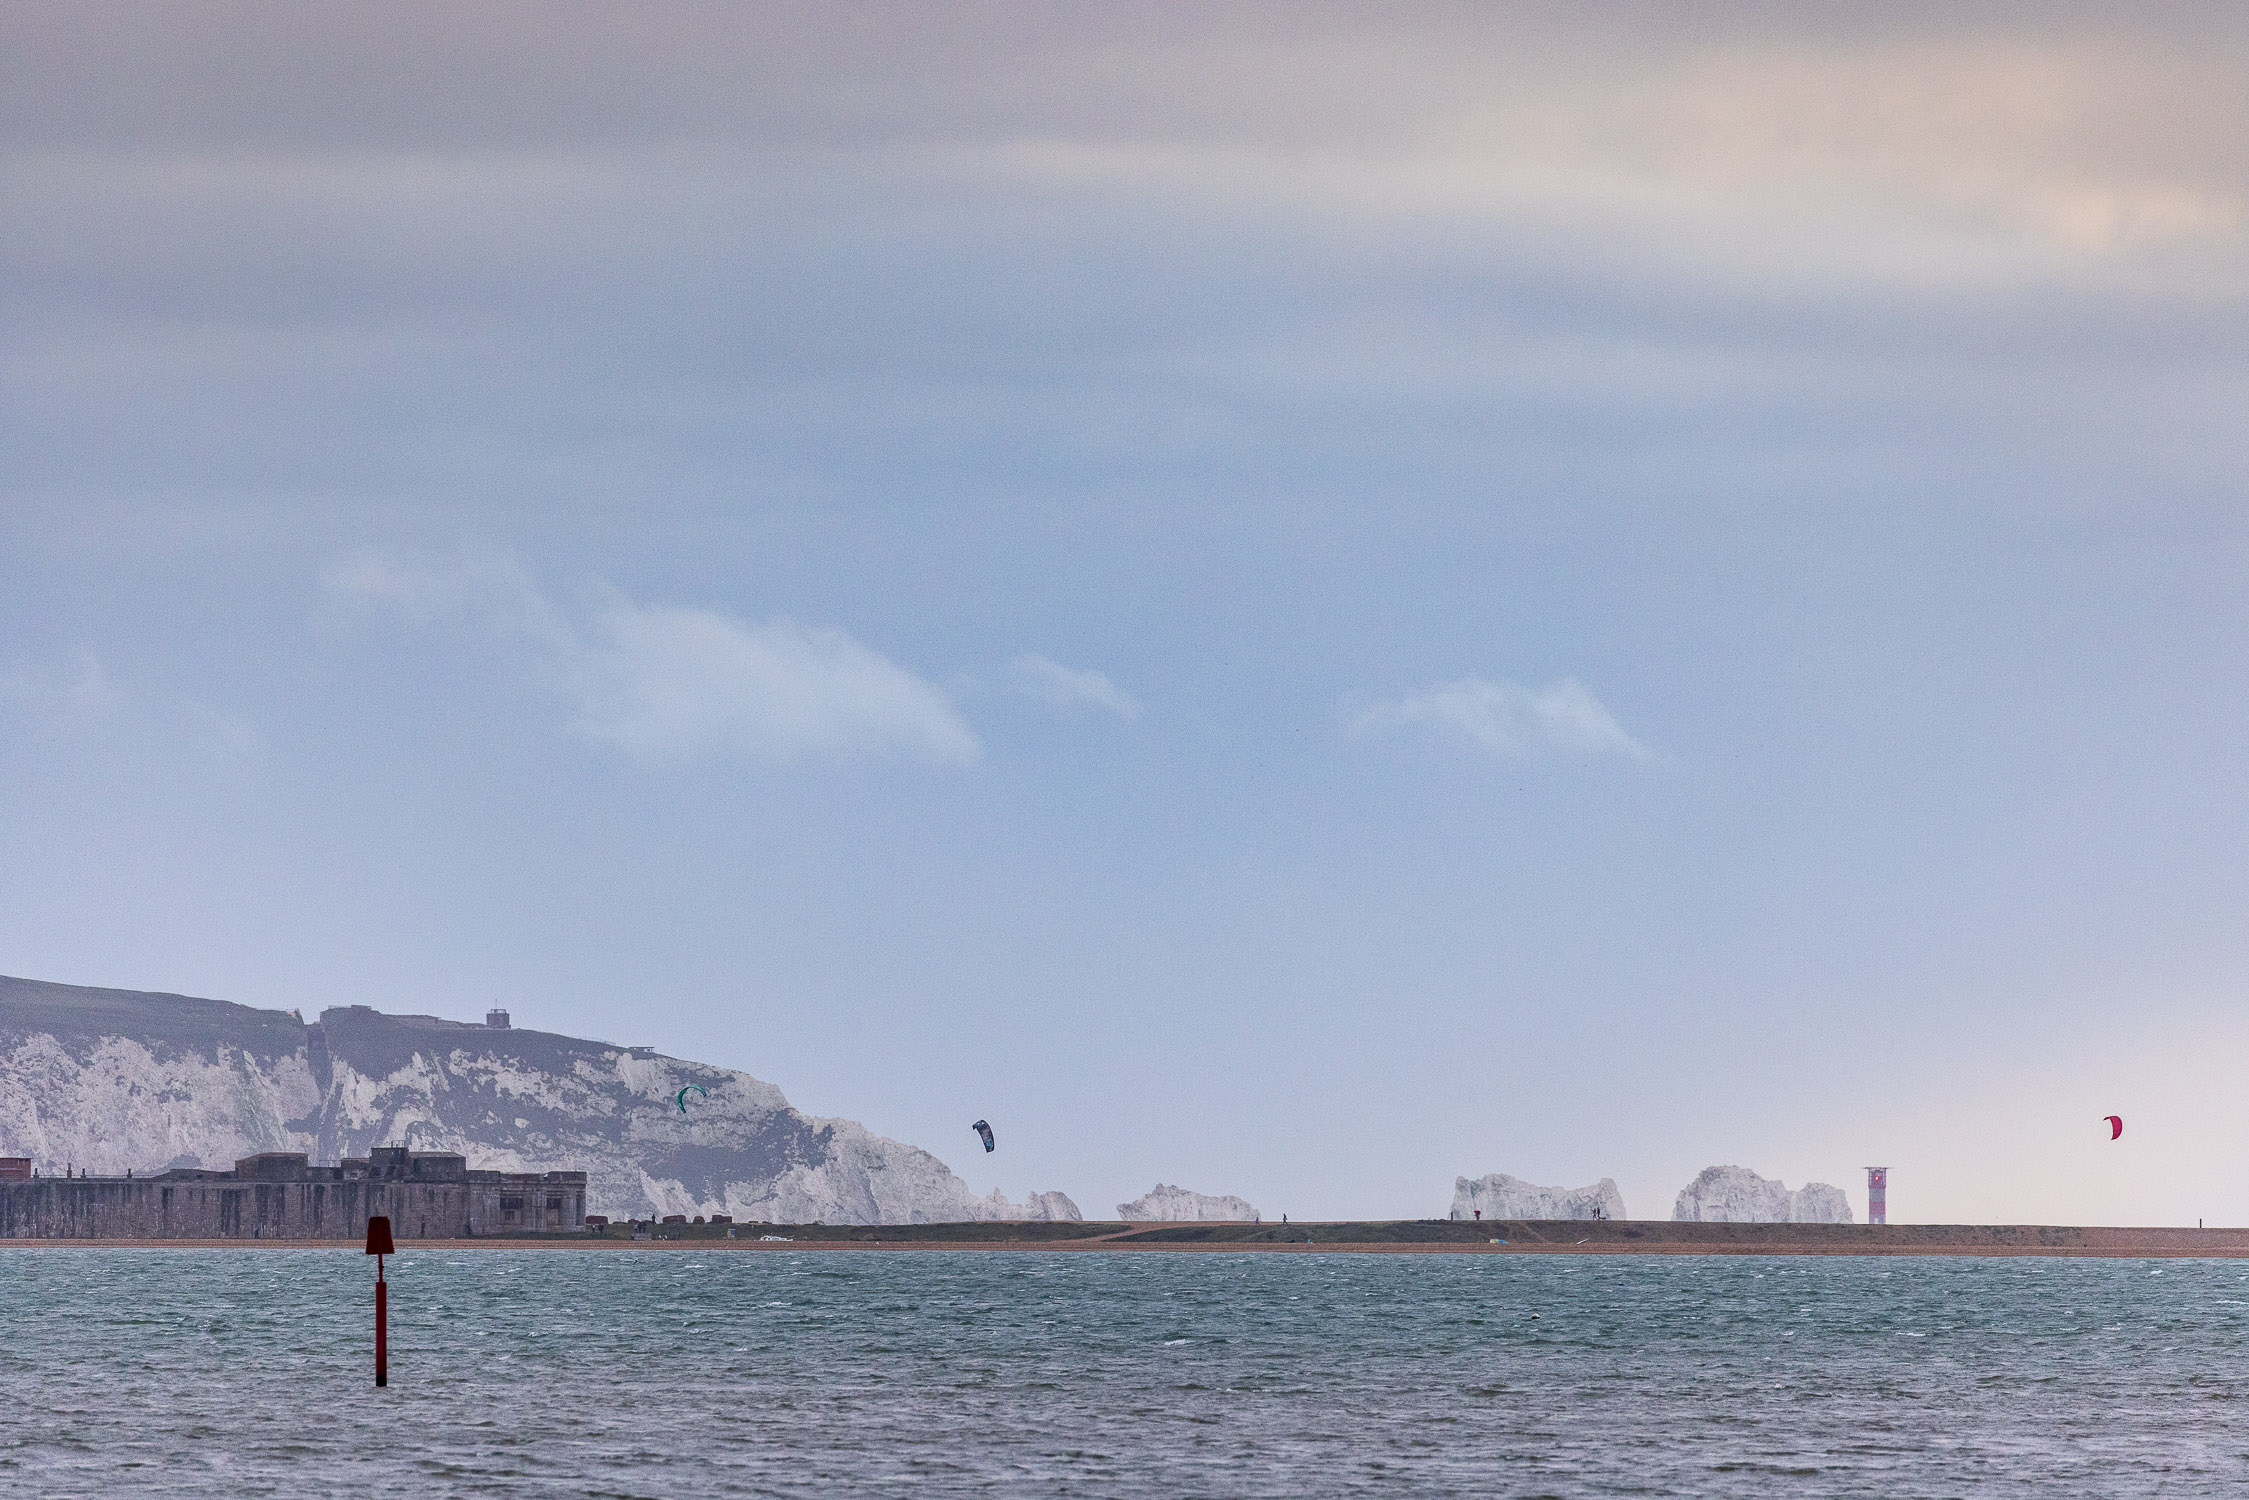 Hurst Point and the Needles from Keyhaven